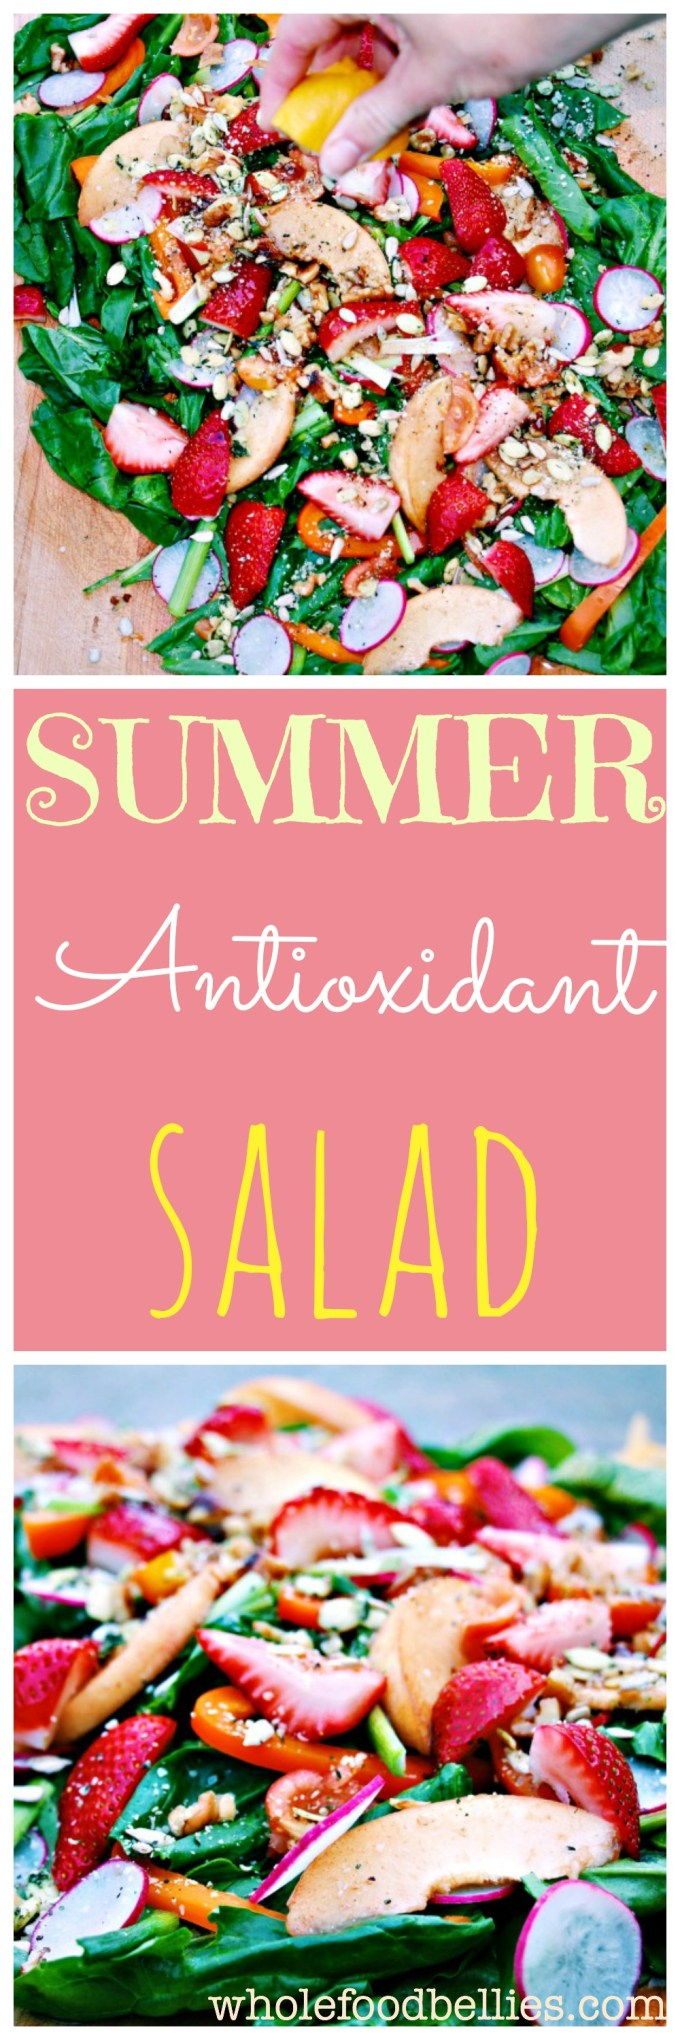 Summer Antioxidant Salad Pinnable Image @wholefoodbellies.com